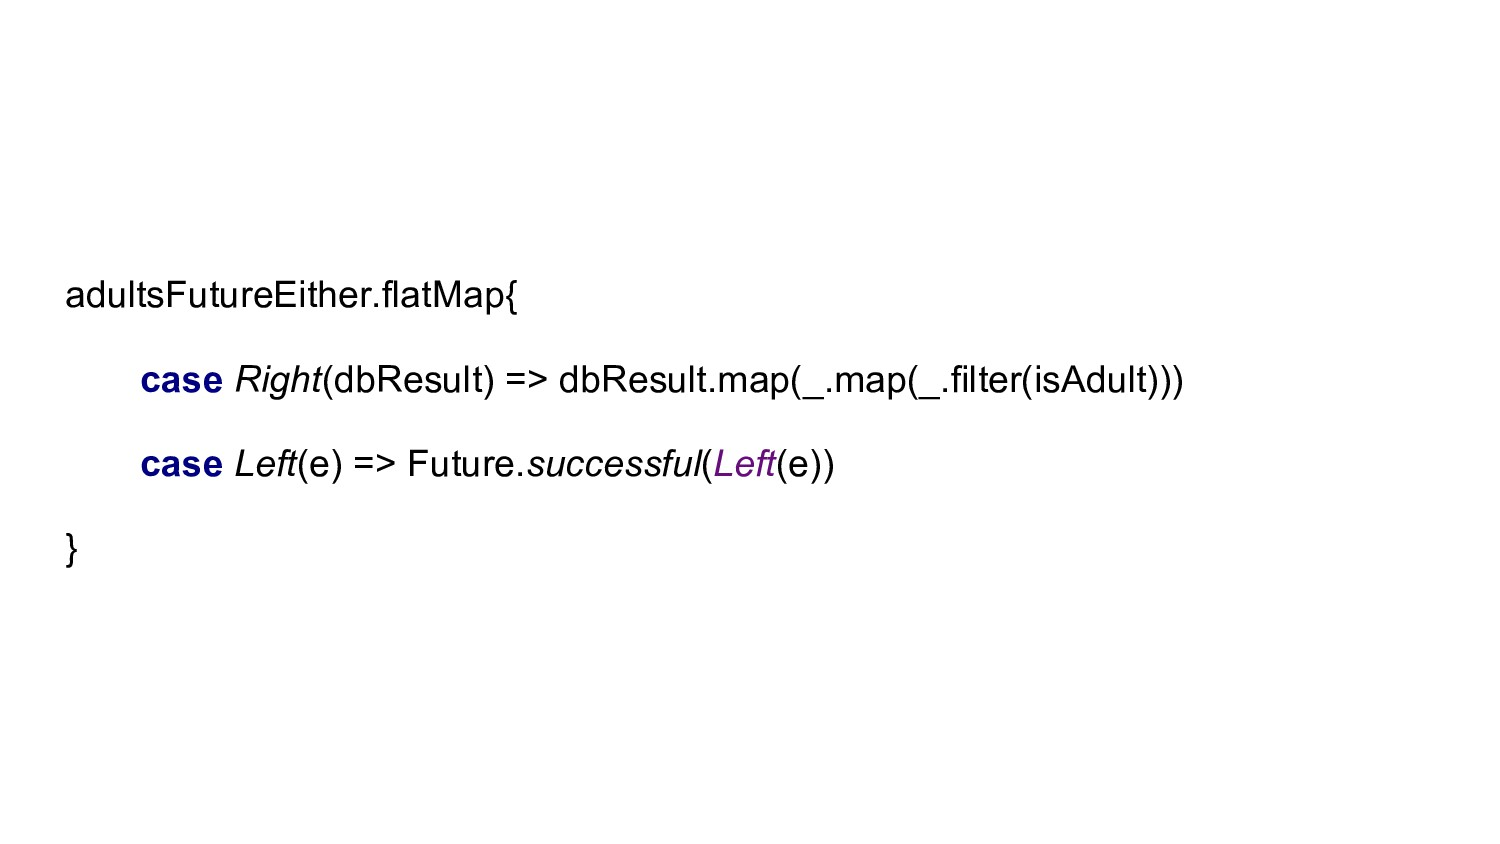 adultsFutureEither.flatMap{ case Right(dbResult...